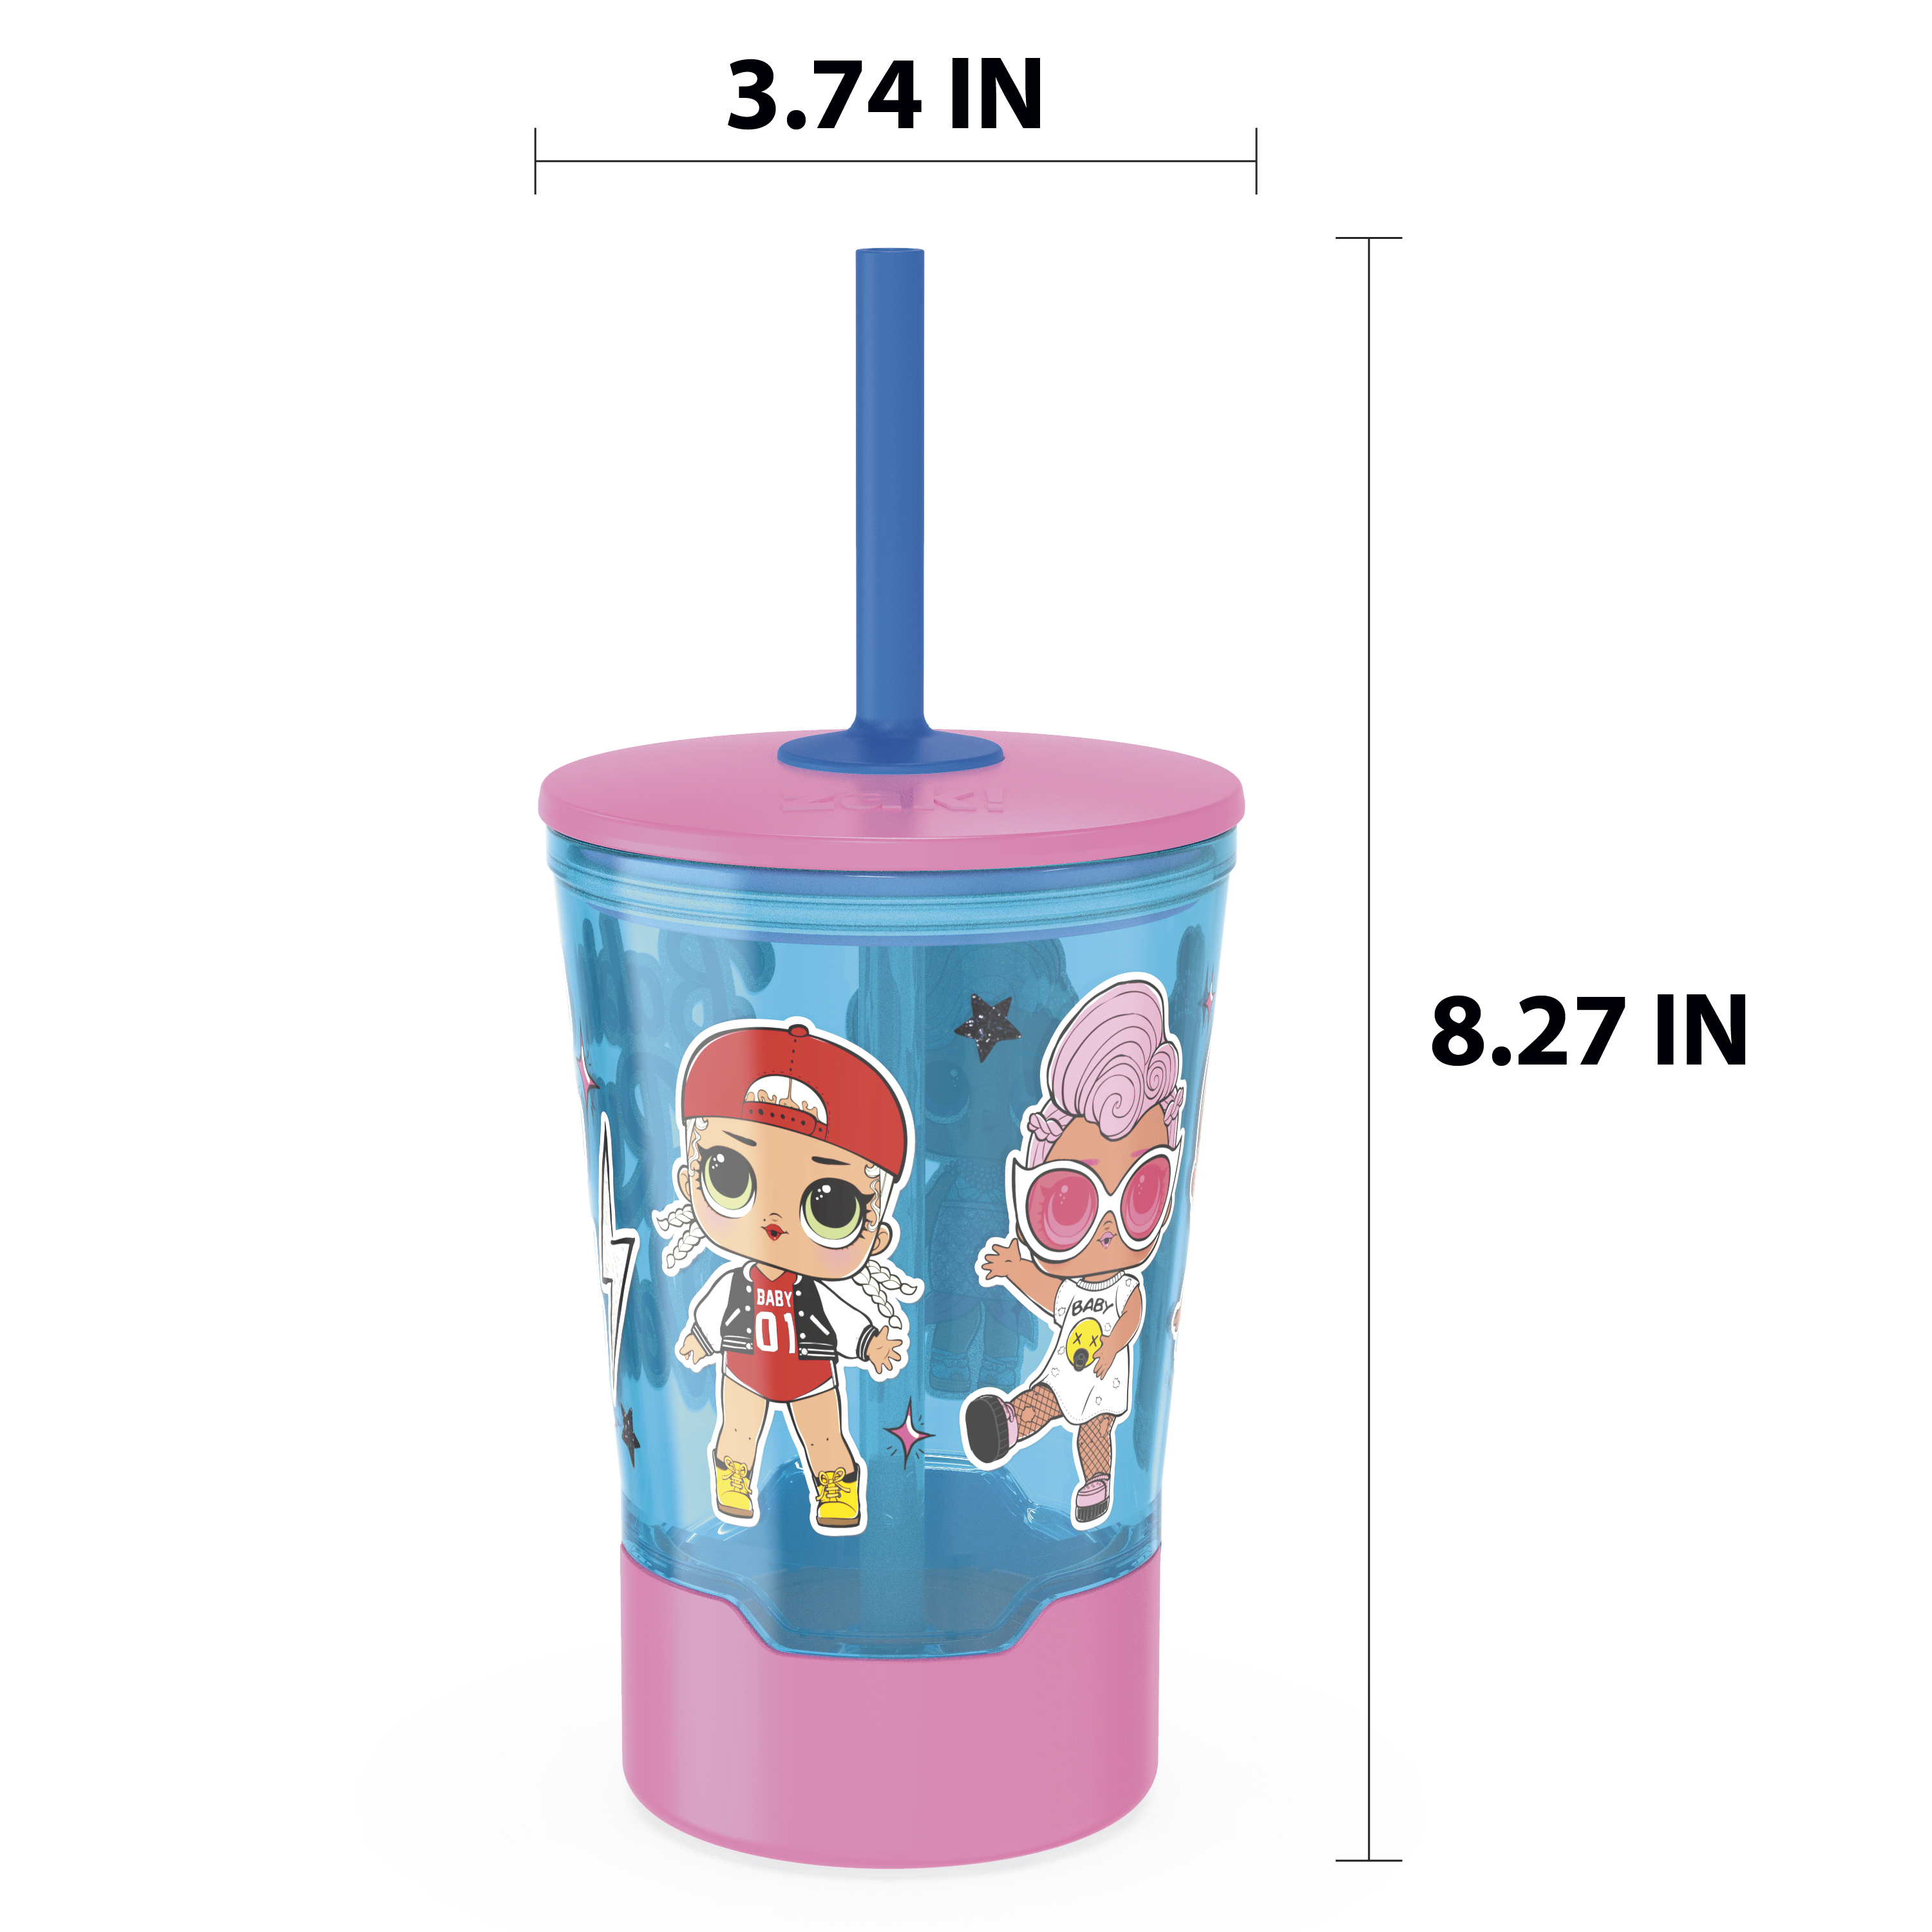 LOL Surprise 16 ounce Mighty Mug Tumbler with Straw, Babies Run the World slideshow image 9